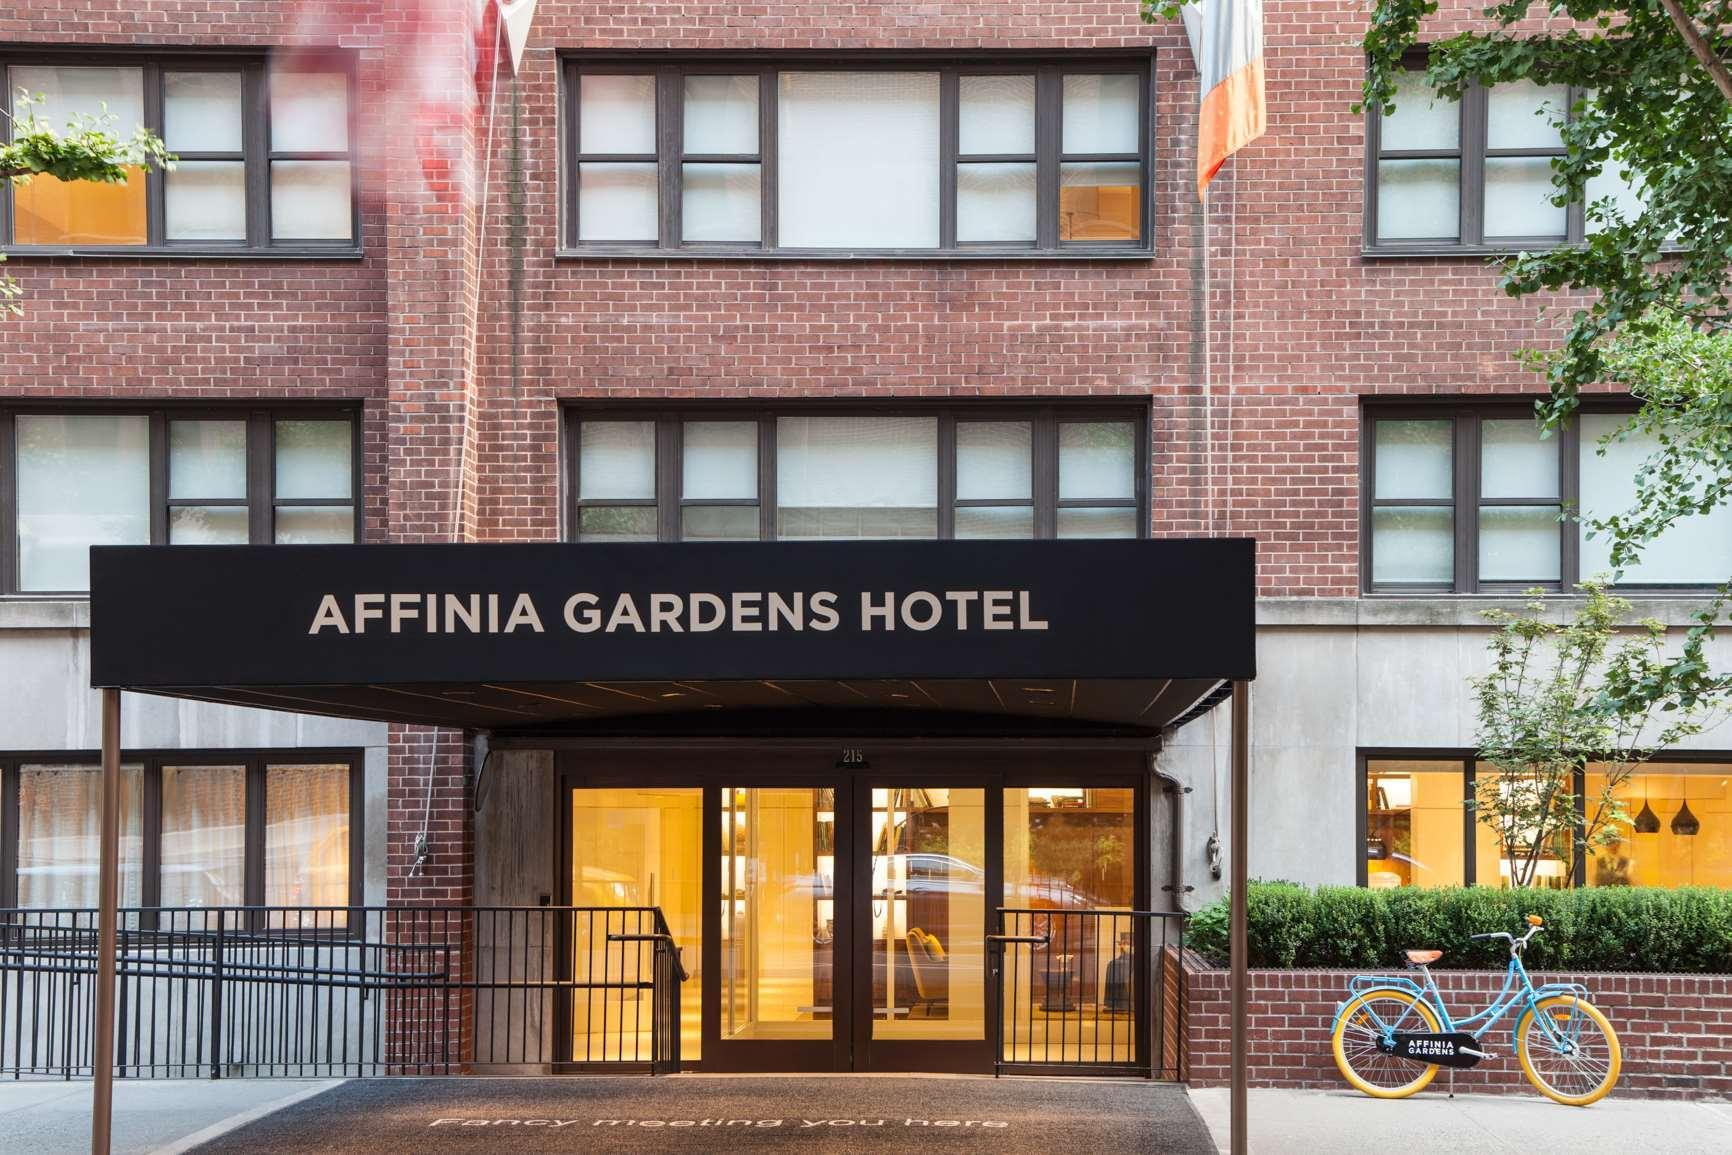 Merveilleux Gardens Suites Hotel By Affinia In New York (NY)   Room ...